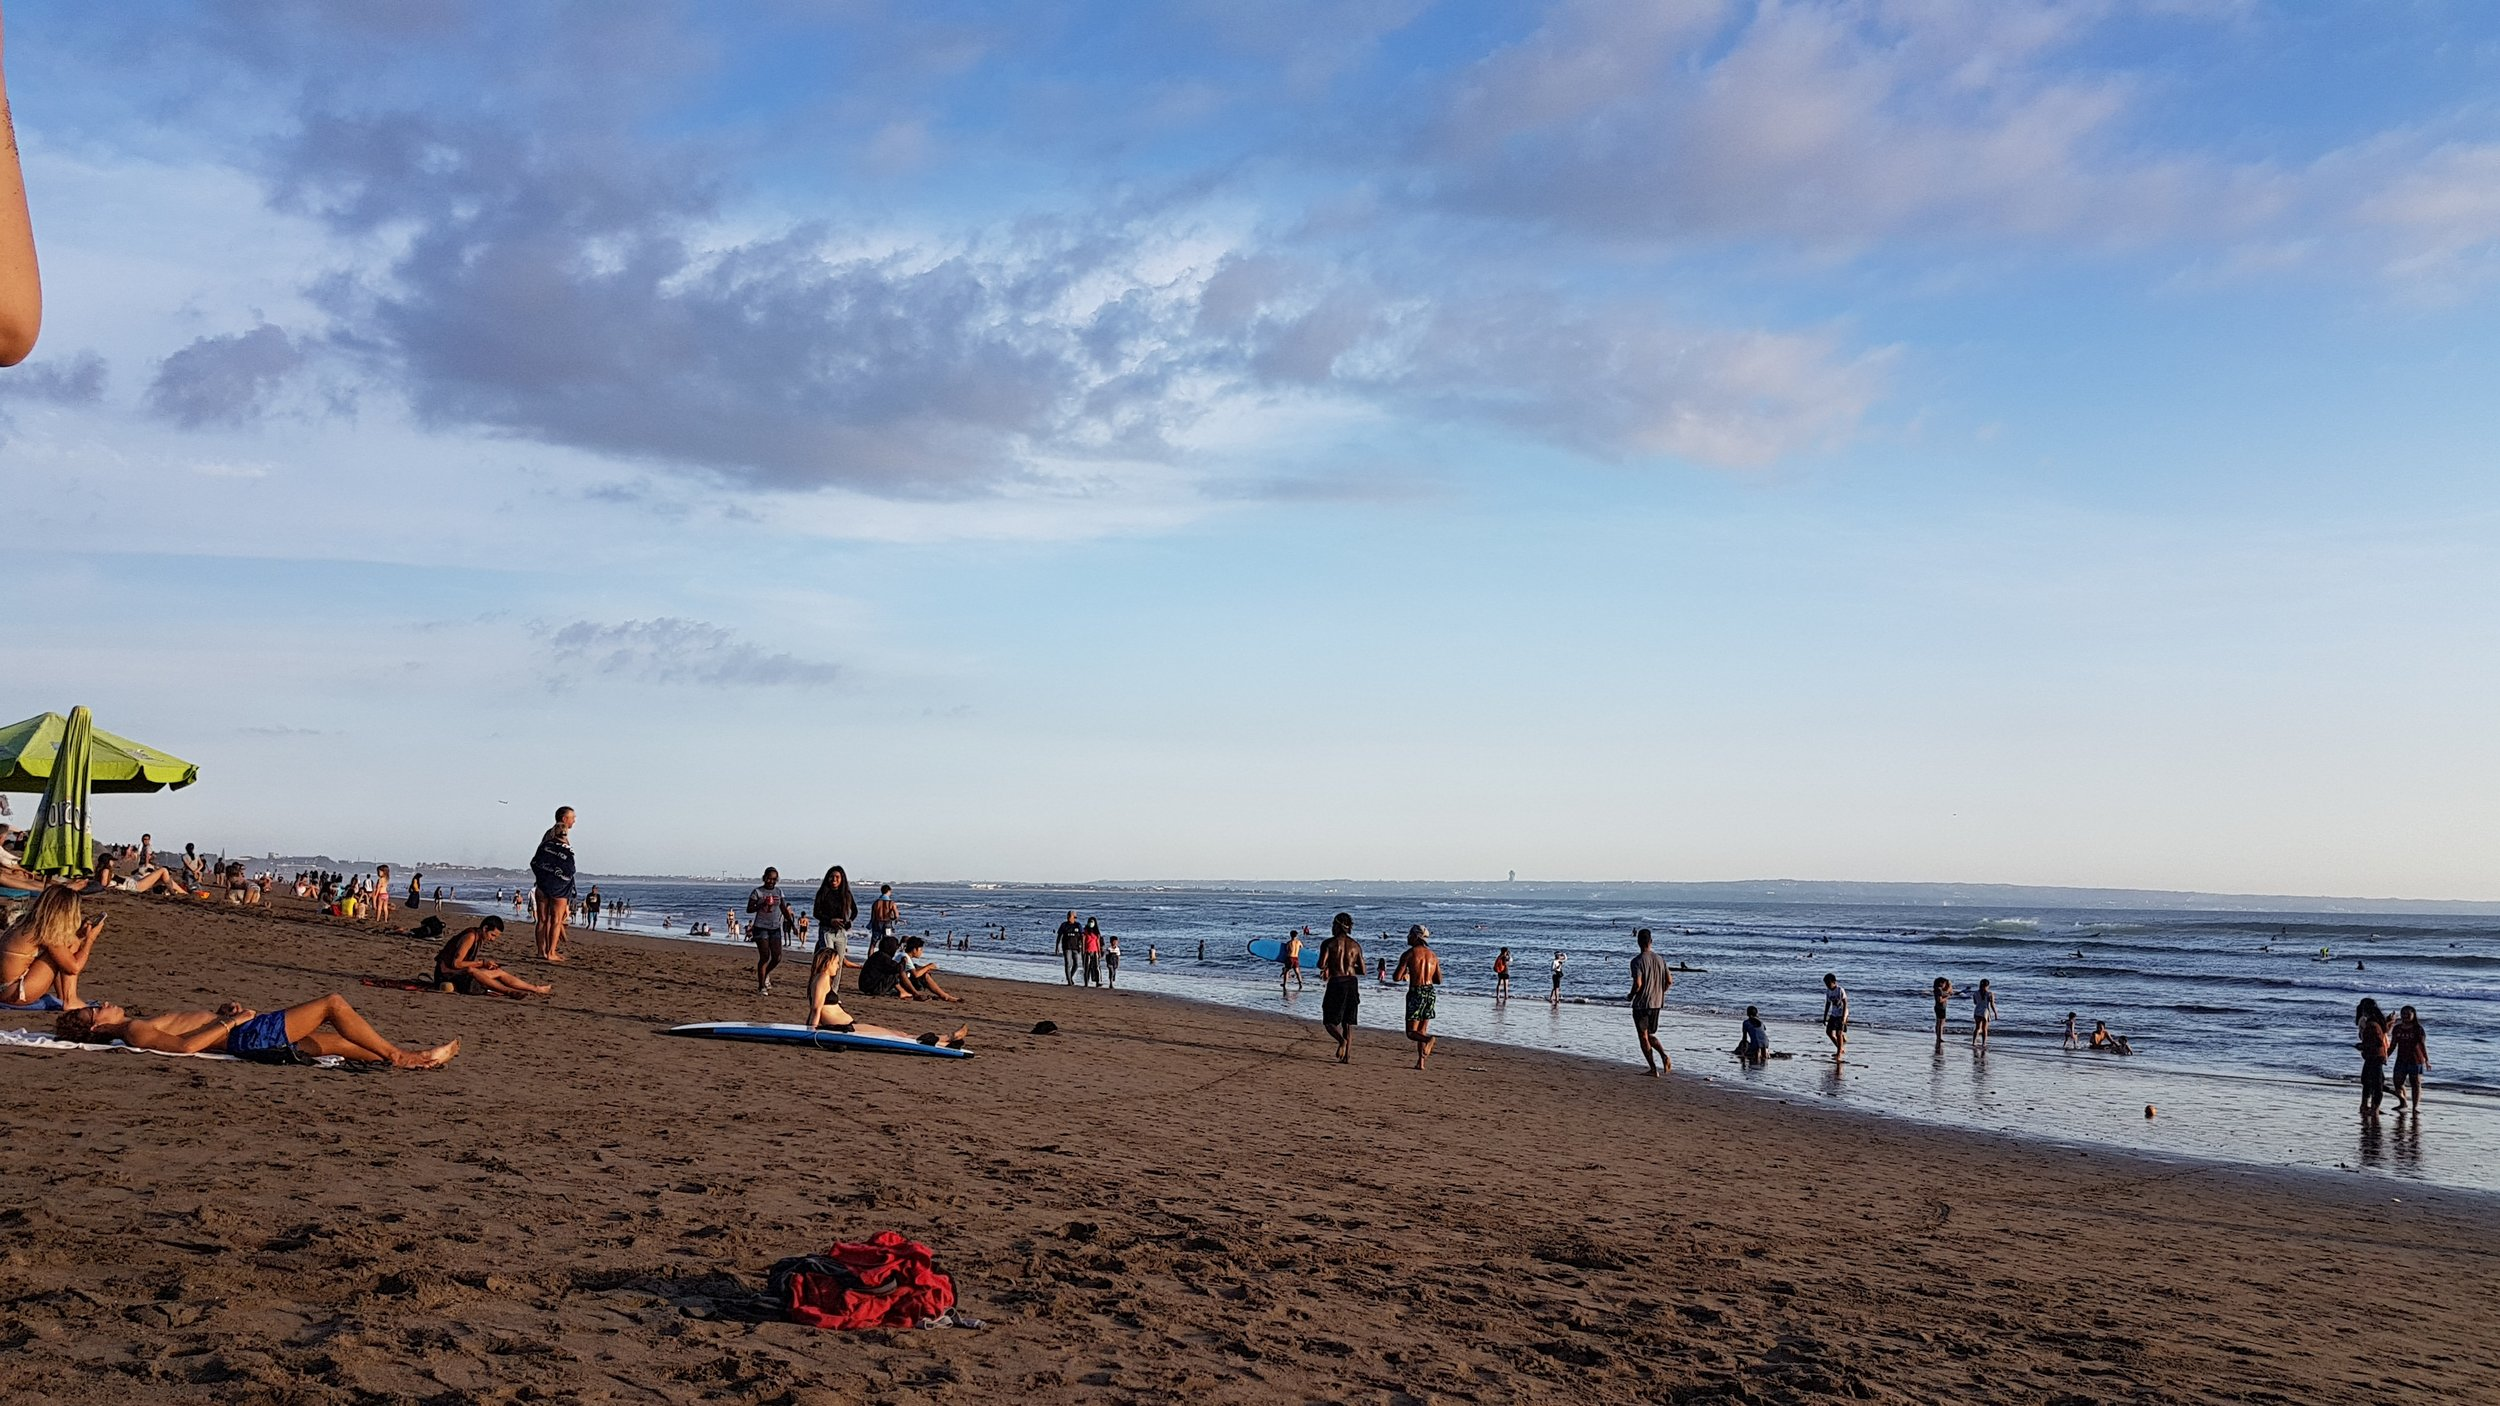 A normal day at Canggu's Batu Bolong Beach.